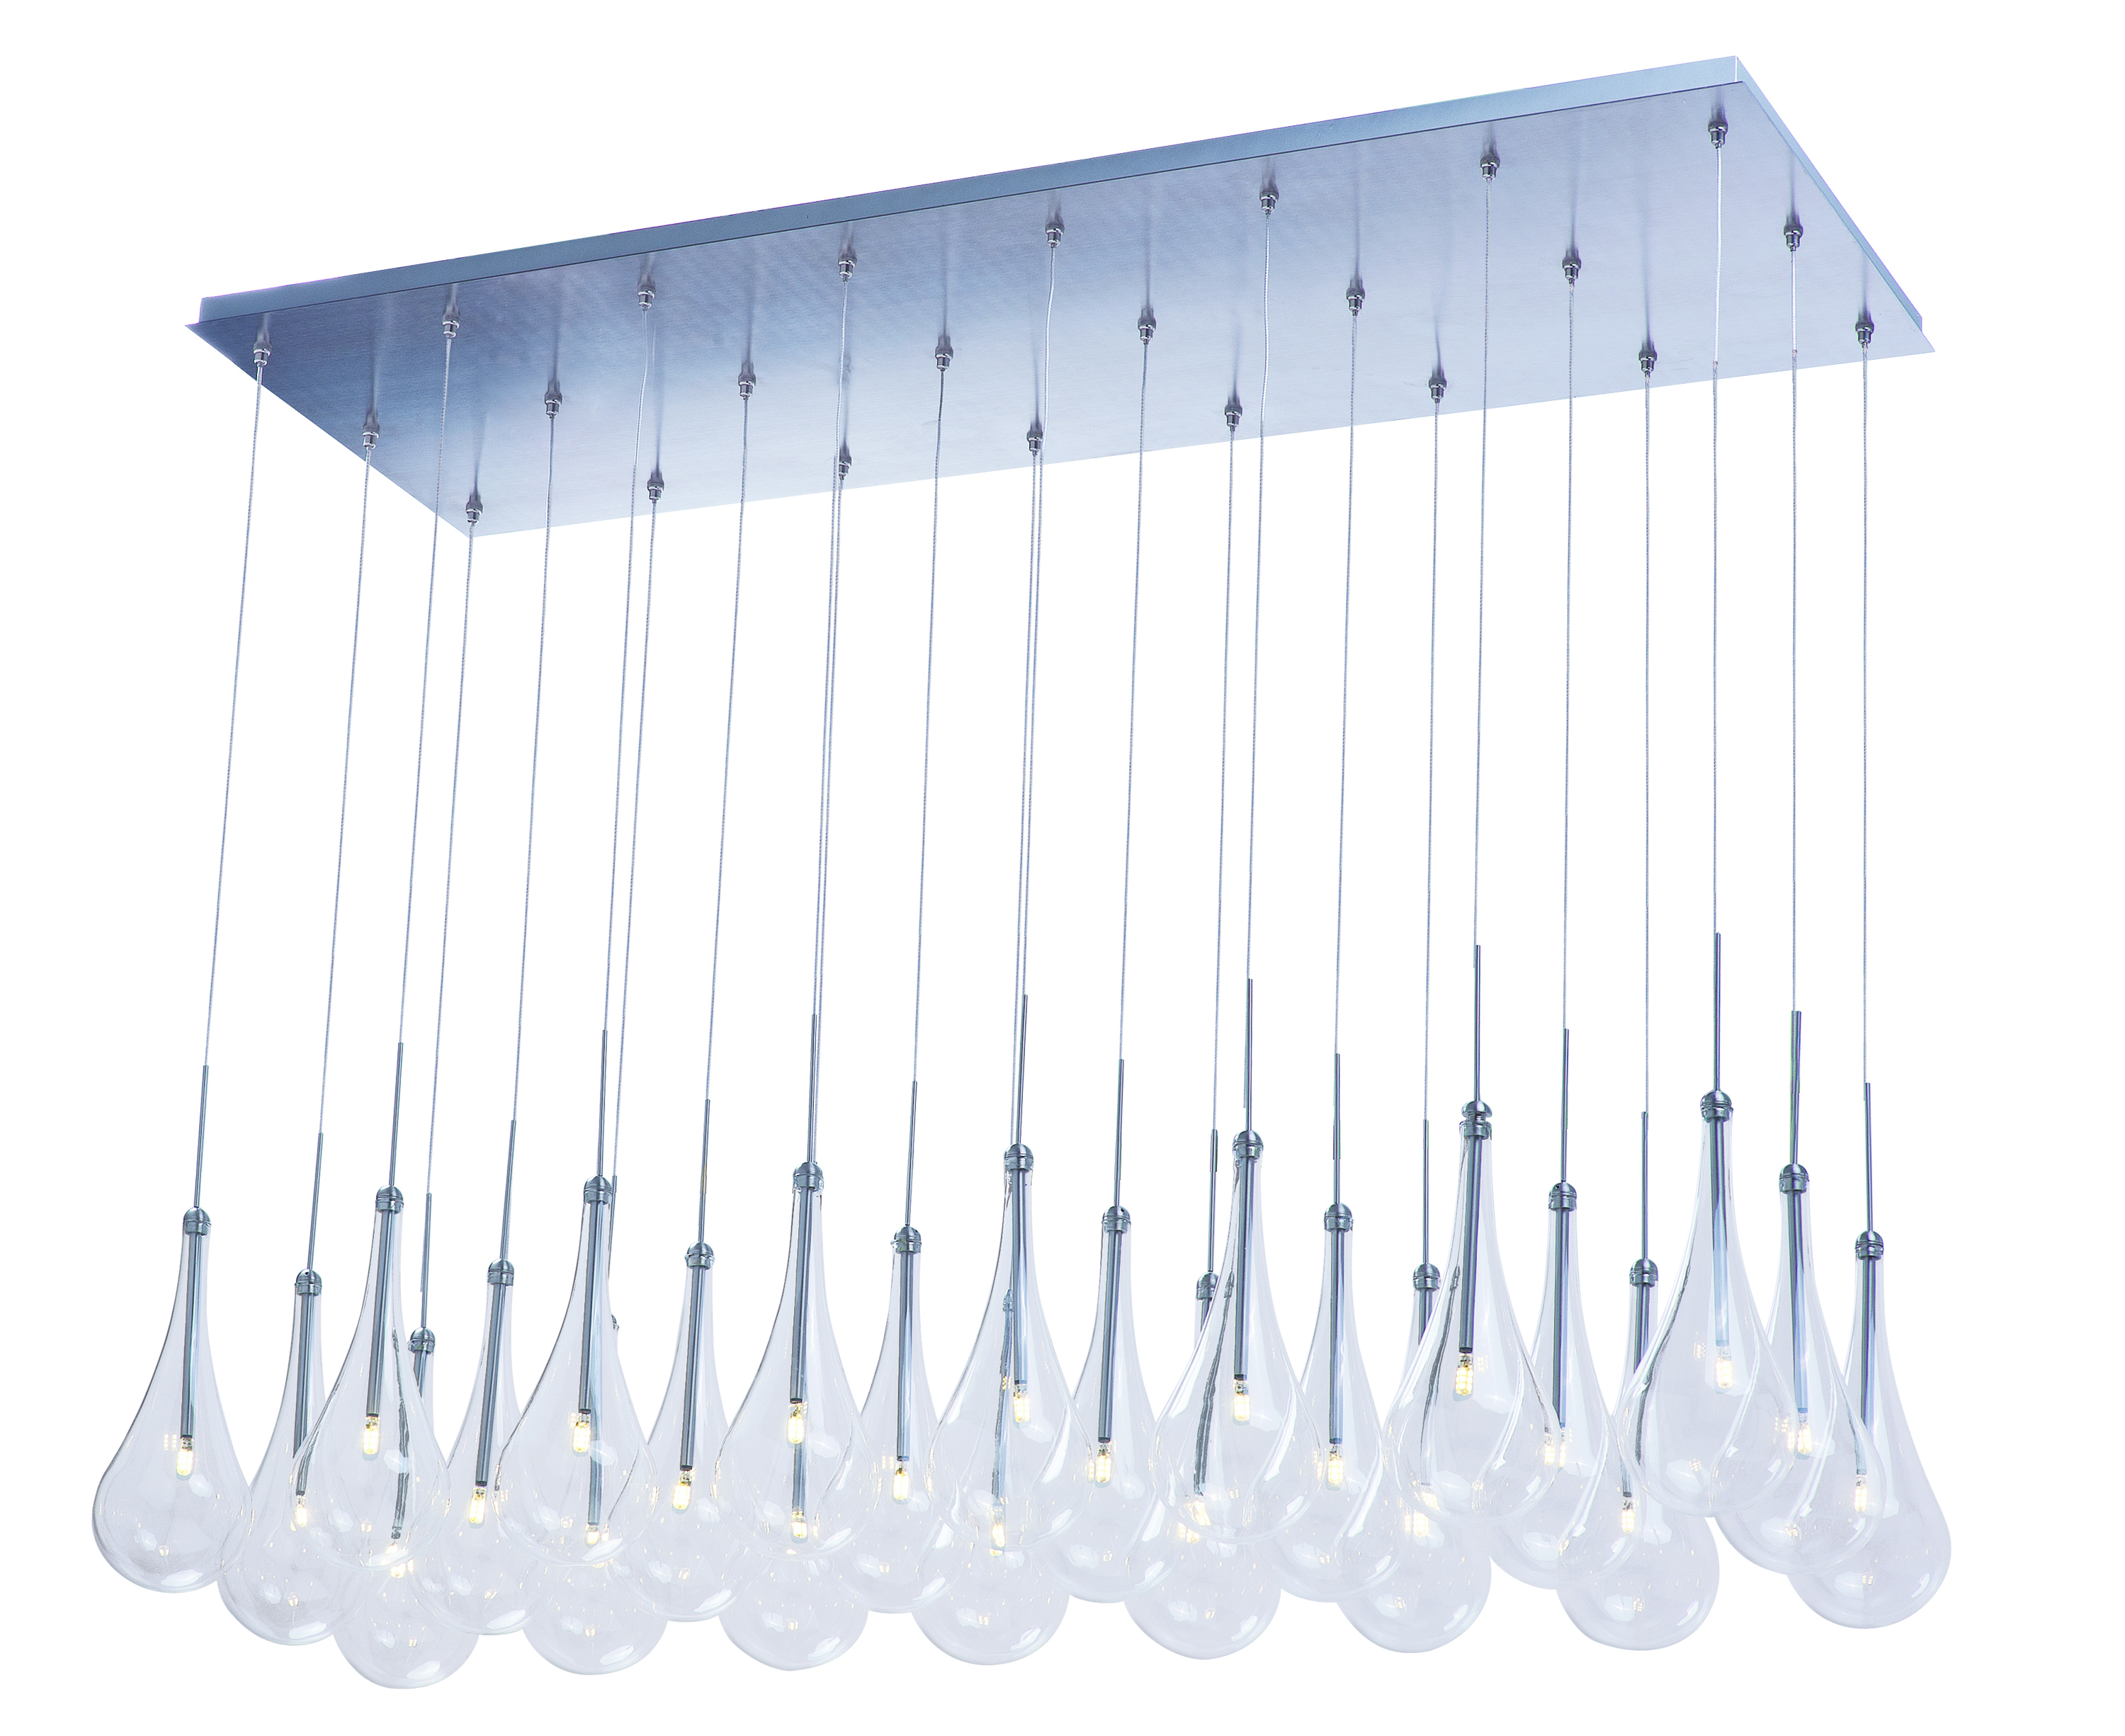 Larmes 24-Light LED Pendant